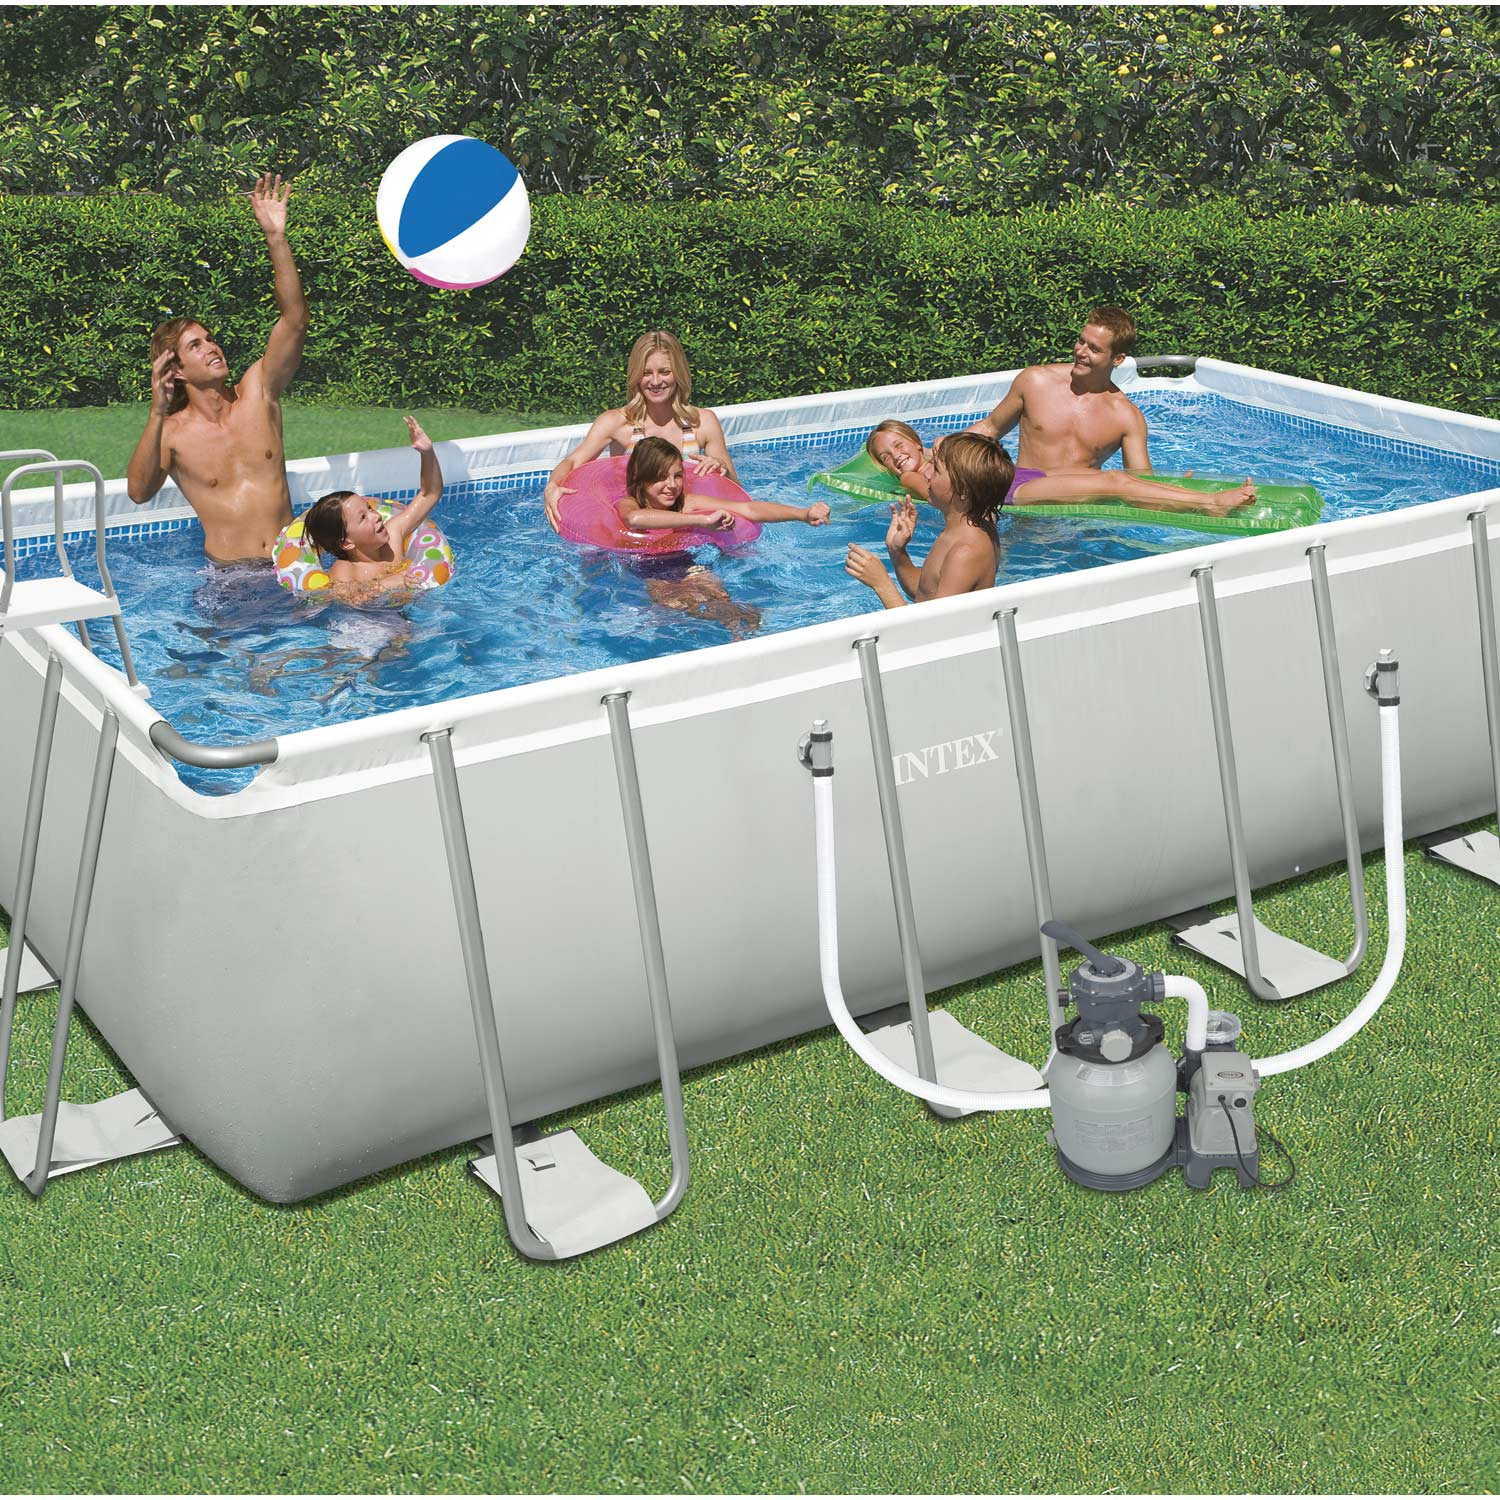 Piscine hors sol autoportante tubulaire ultra silver intex for Tole piscine hors sol